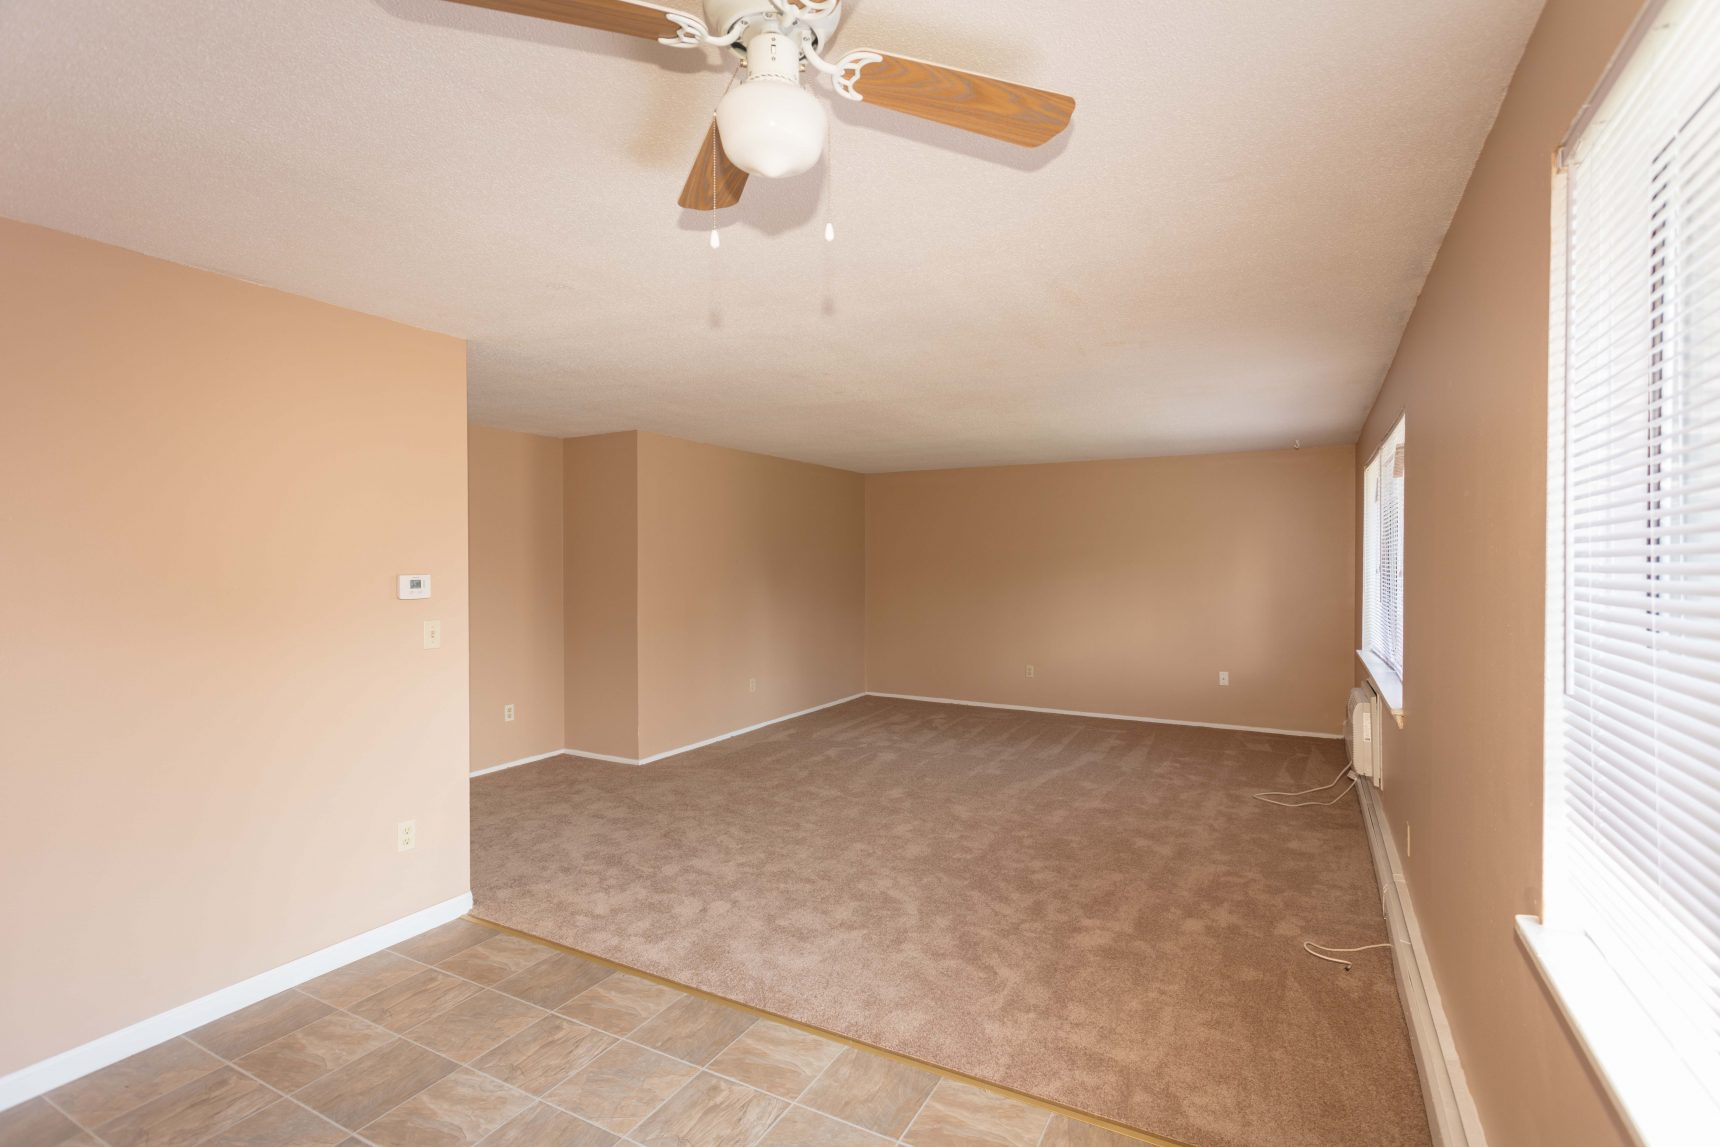 Studio Apartments for Rent in Rochester NY   Glendale Realty ...